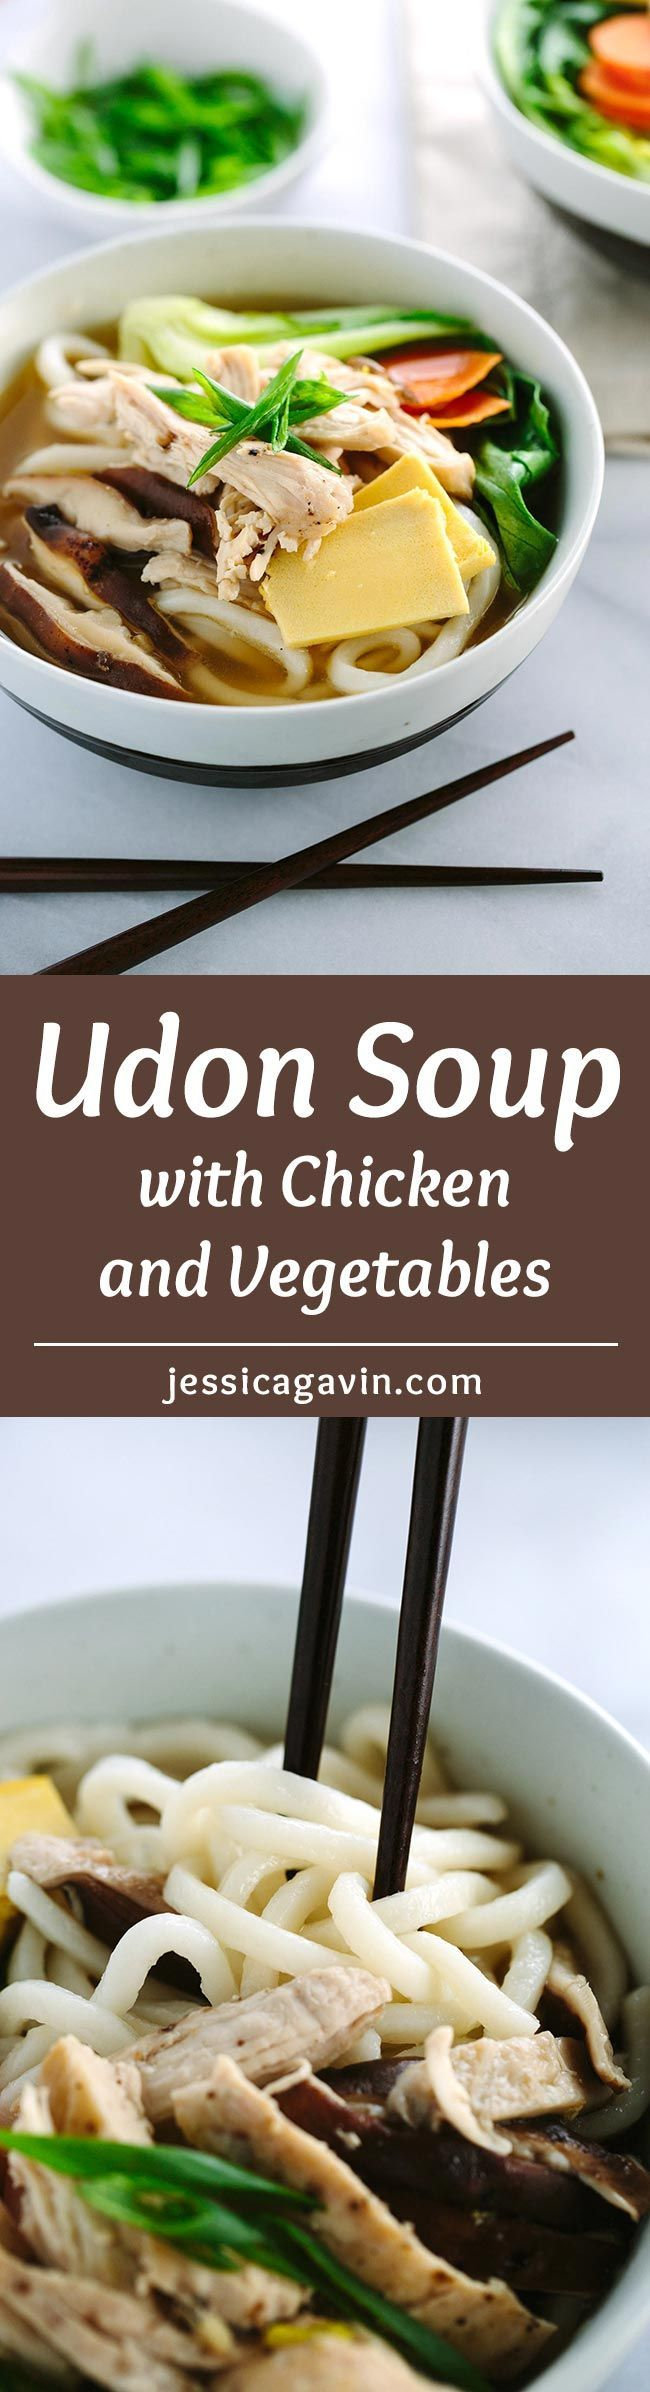 Chicken Udon Soup with Bok Choy - Each bowl is packed with protein, vegetables, and Asian noodles in a savory soy ginger broth. A simple and quick meal on chilly days! | jessicagavin.com